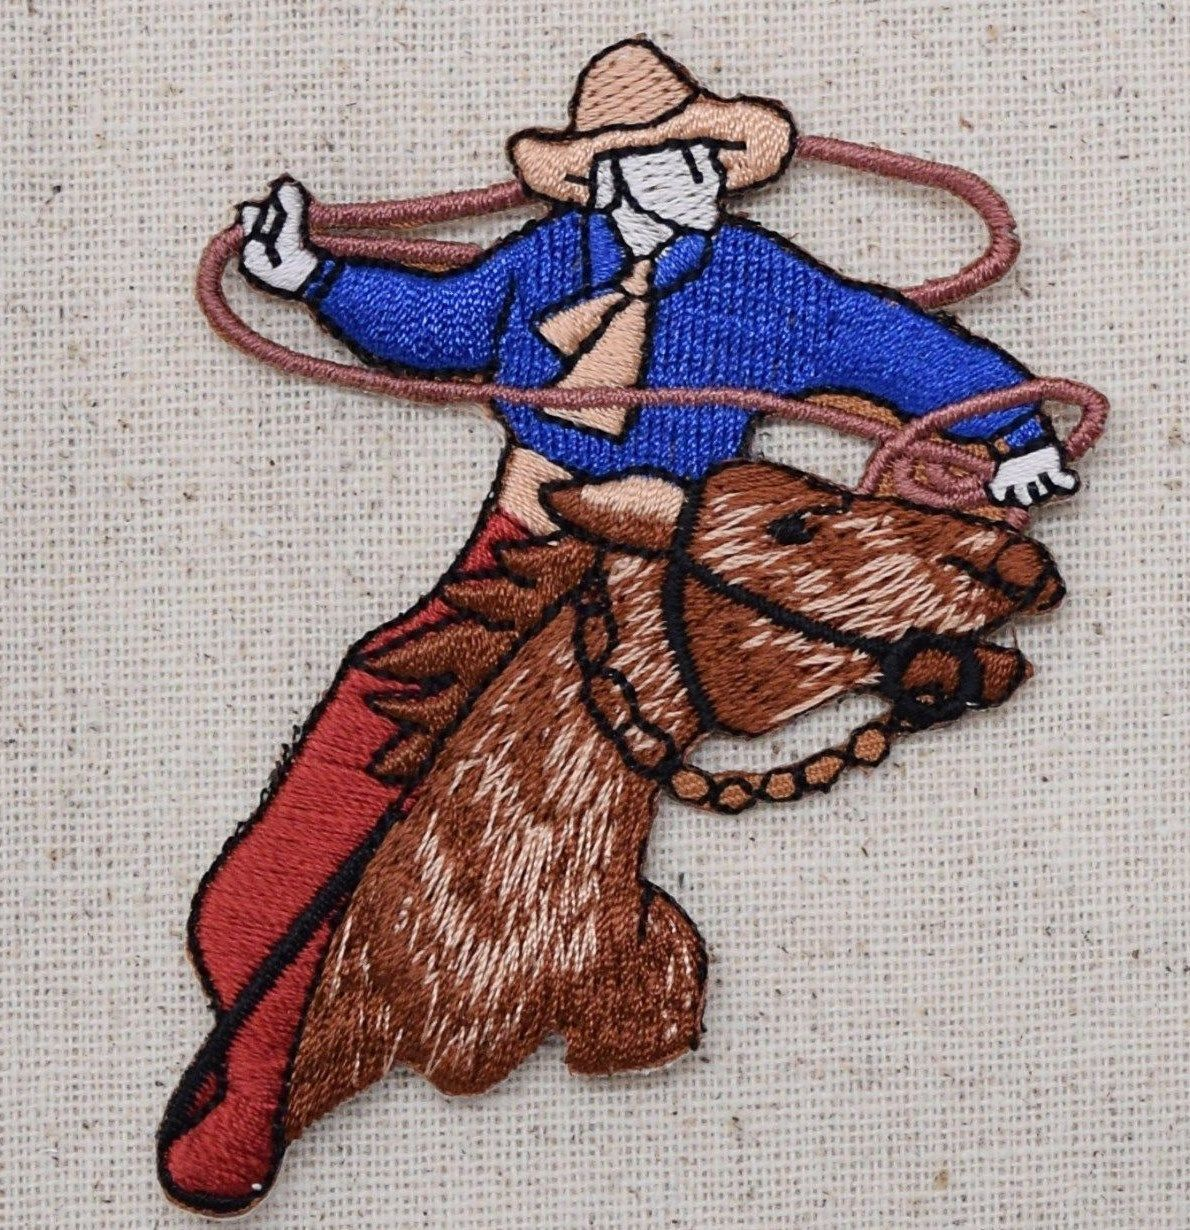 Iron on Cowboy Boot with Horseback Rider Applique Patch